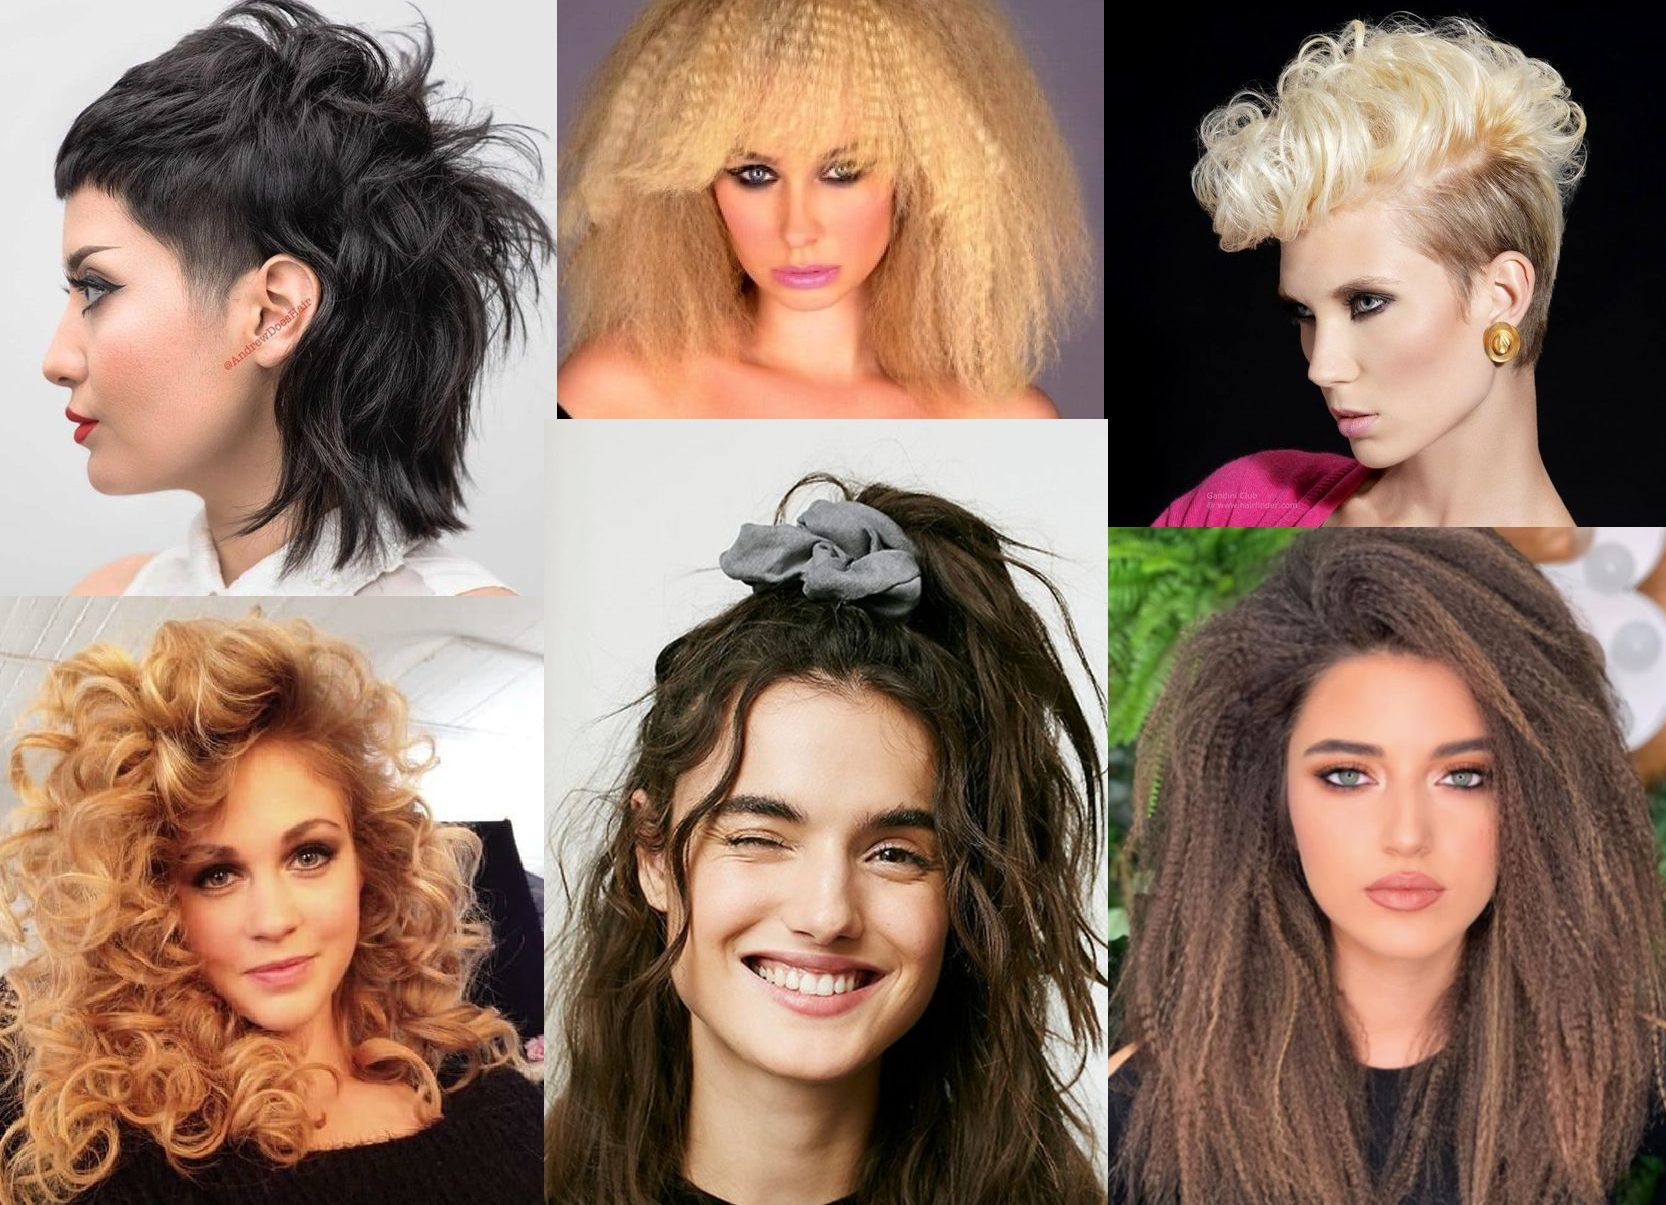 4s Hairstyles - 4 Hairstyles Inspired by the 194s